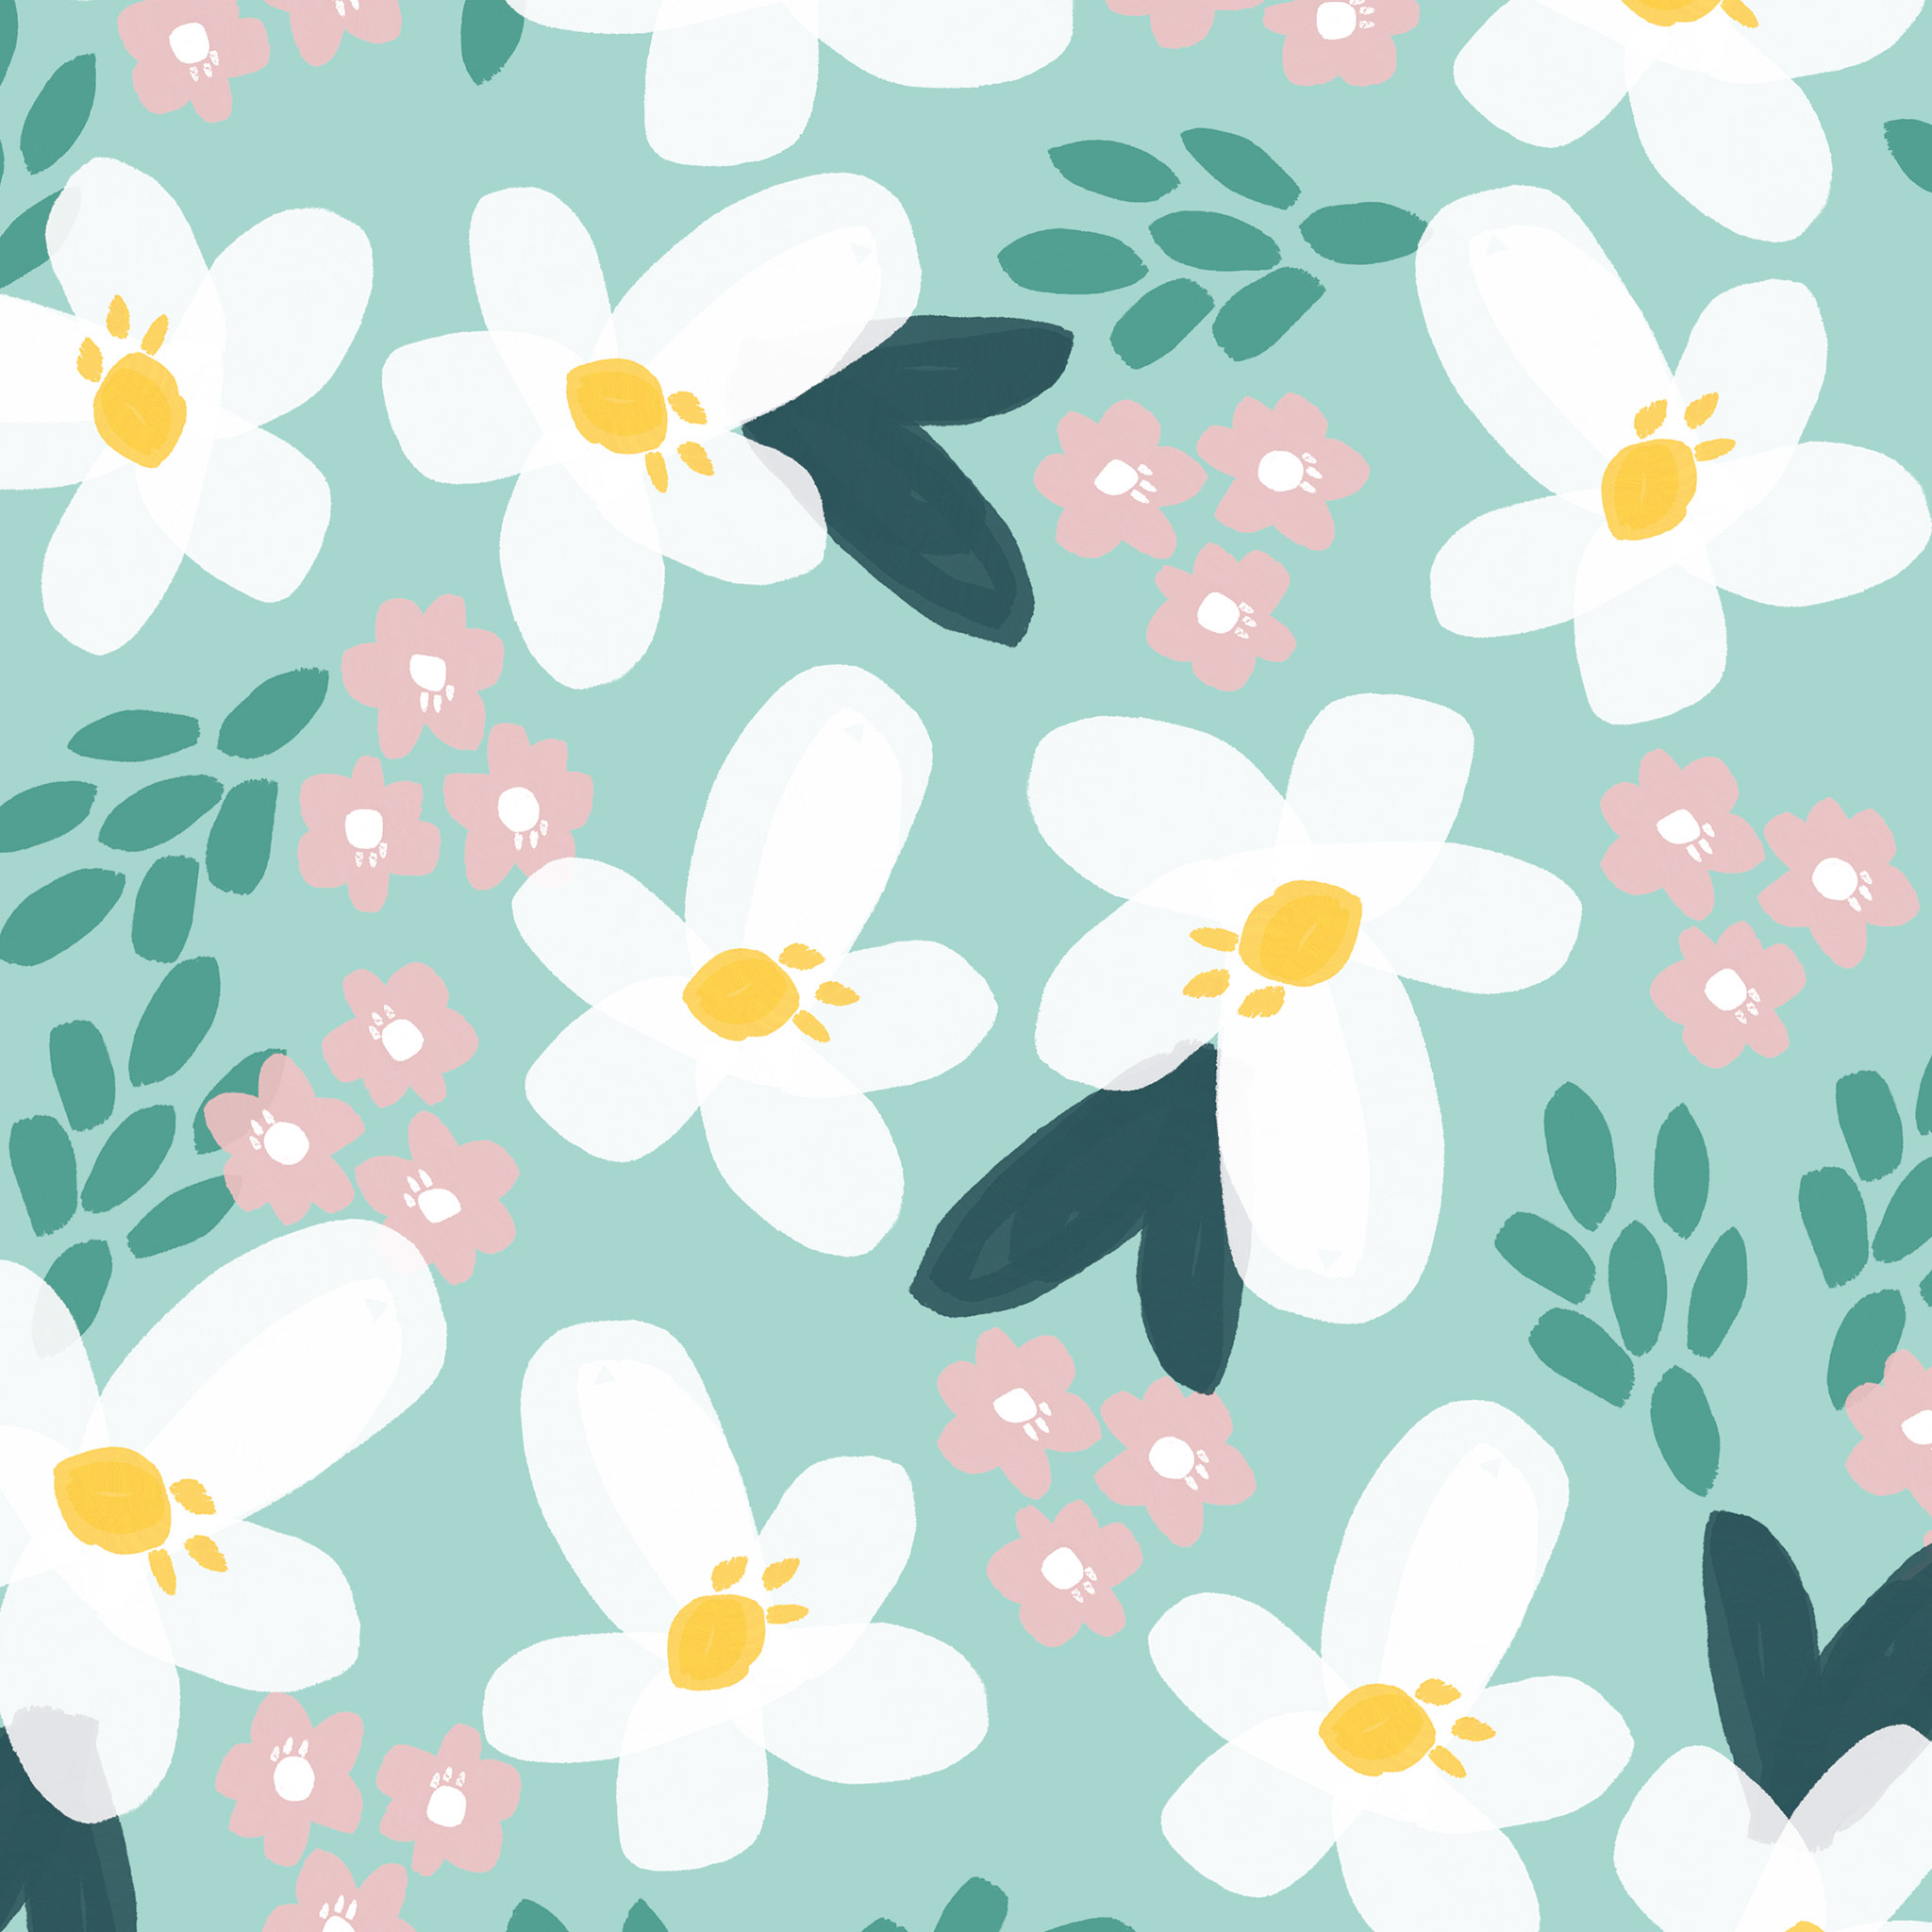 download our free summer flower wallpaper for your ipad, phone or